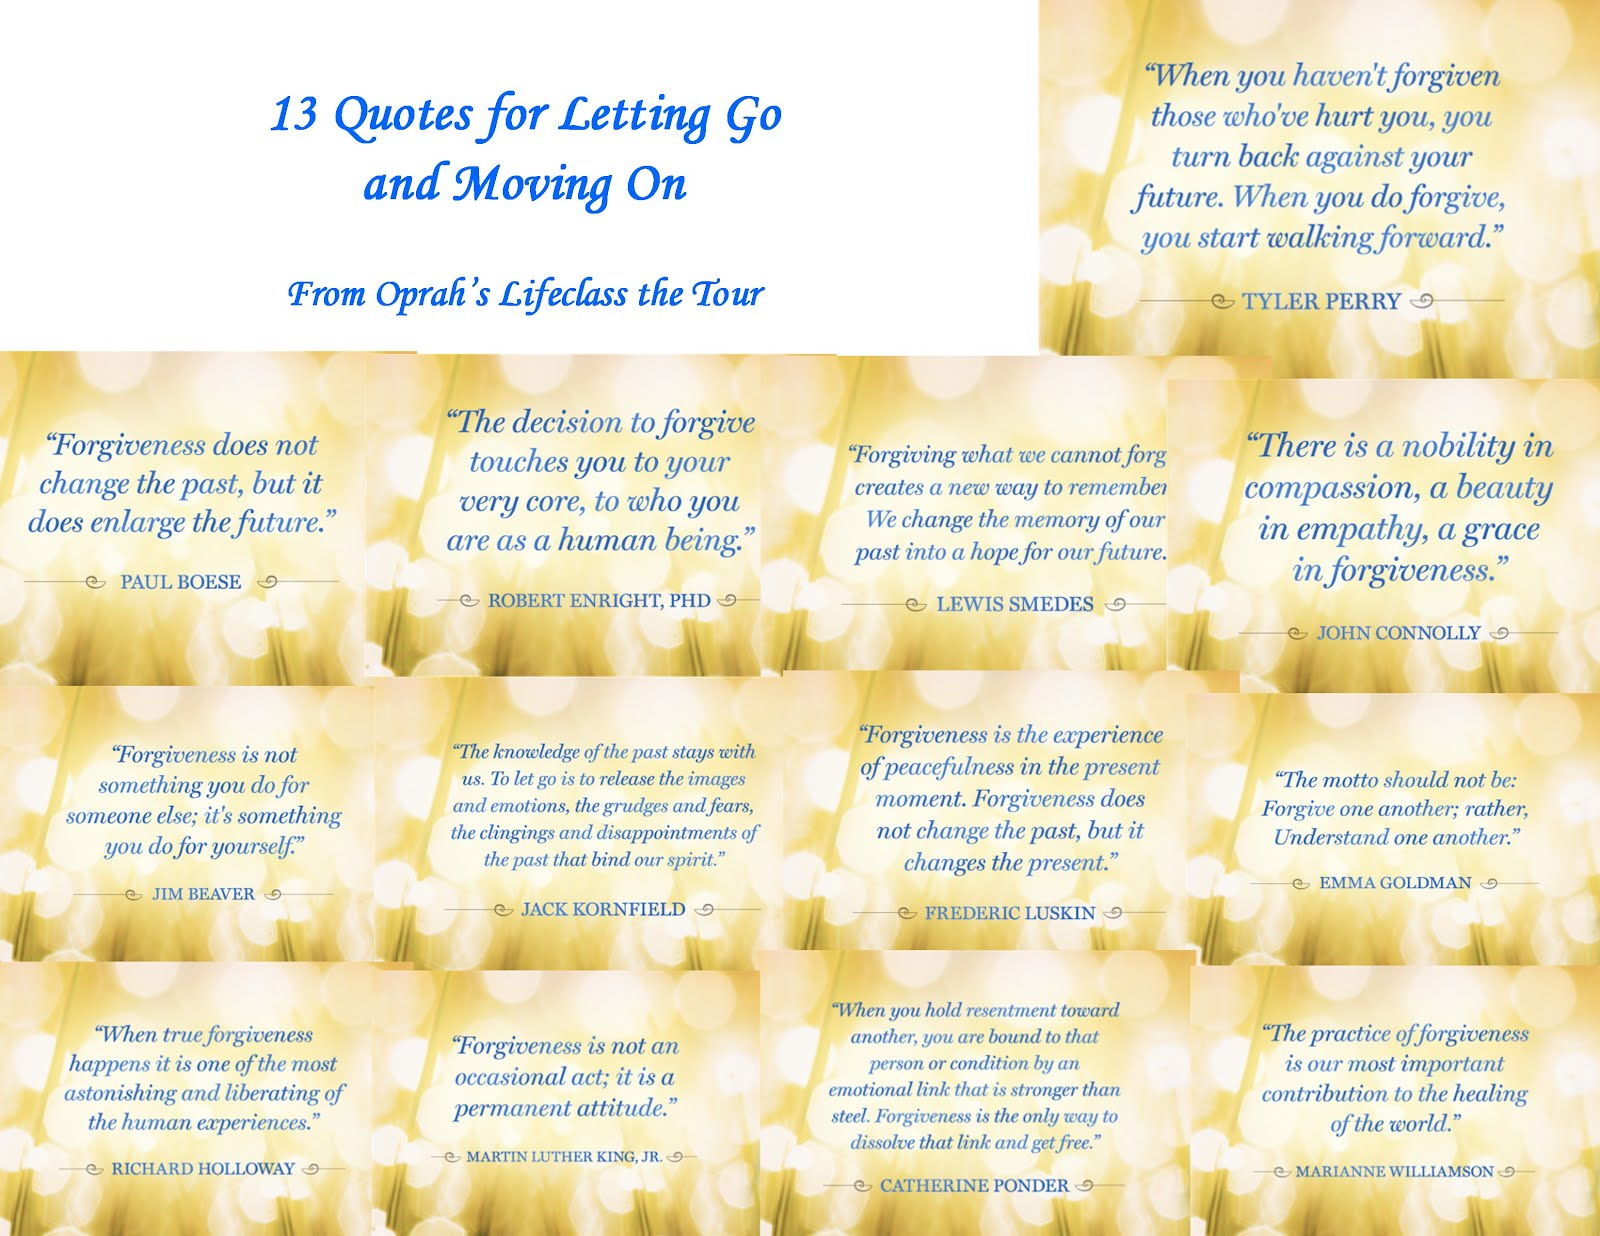 Letting quote #7